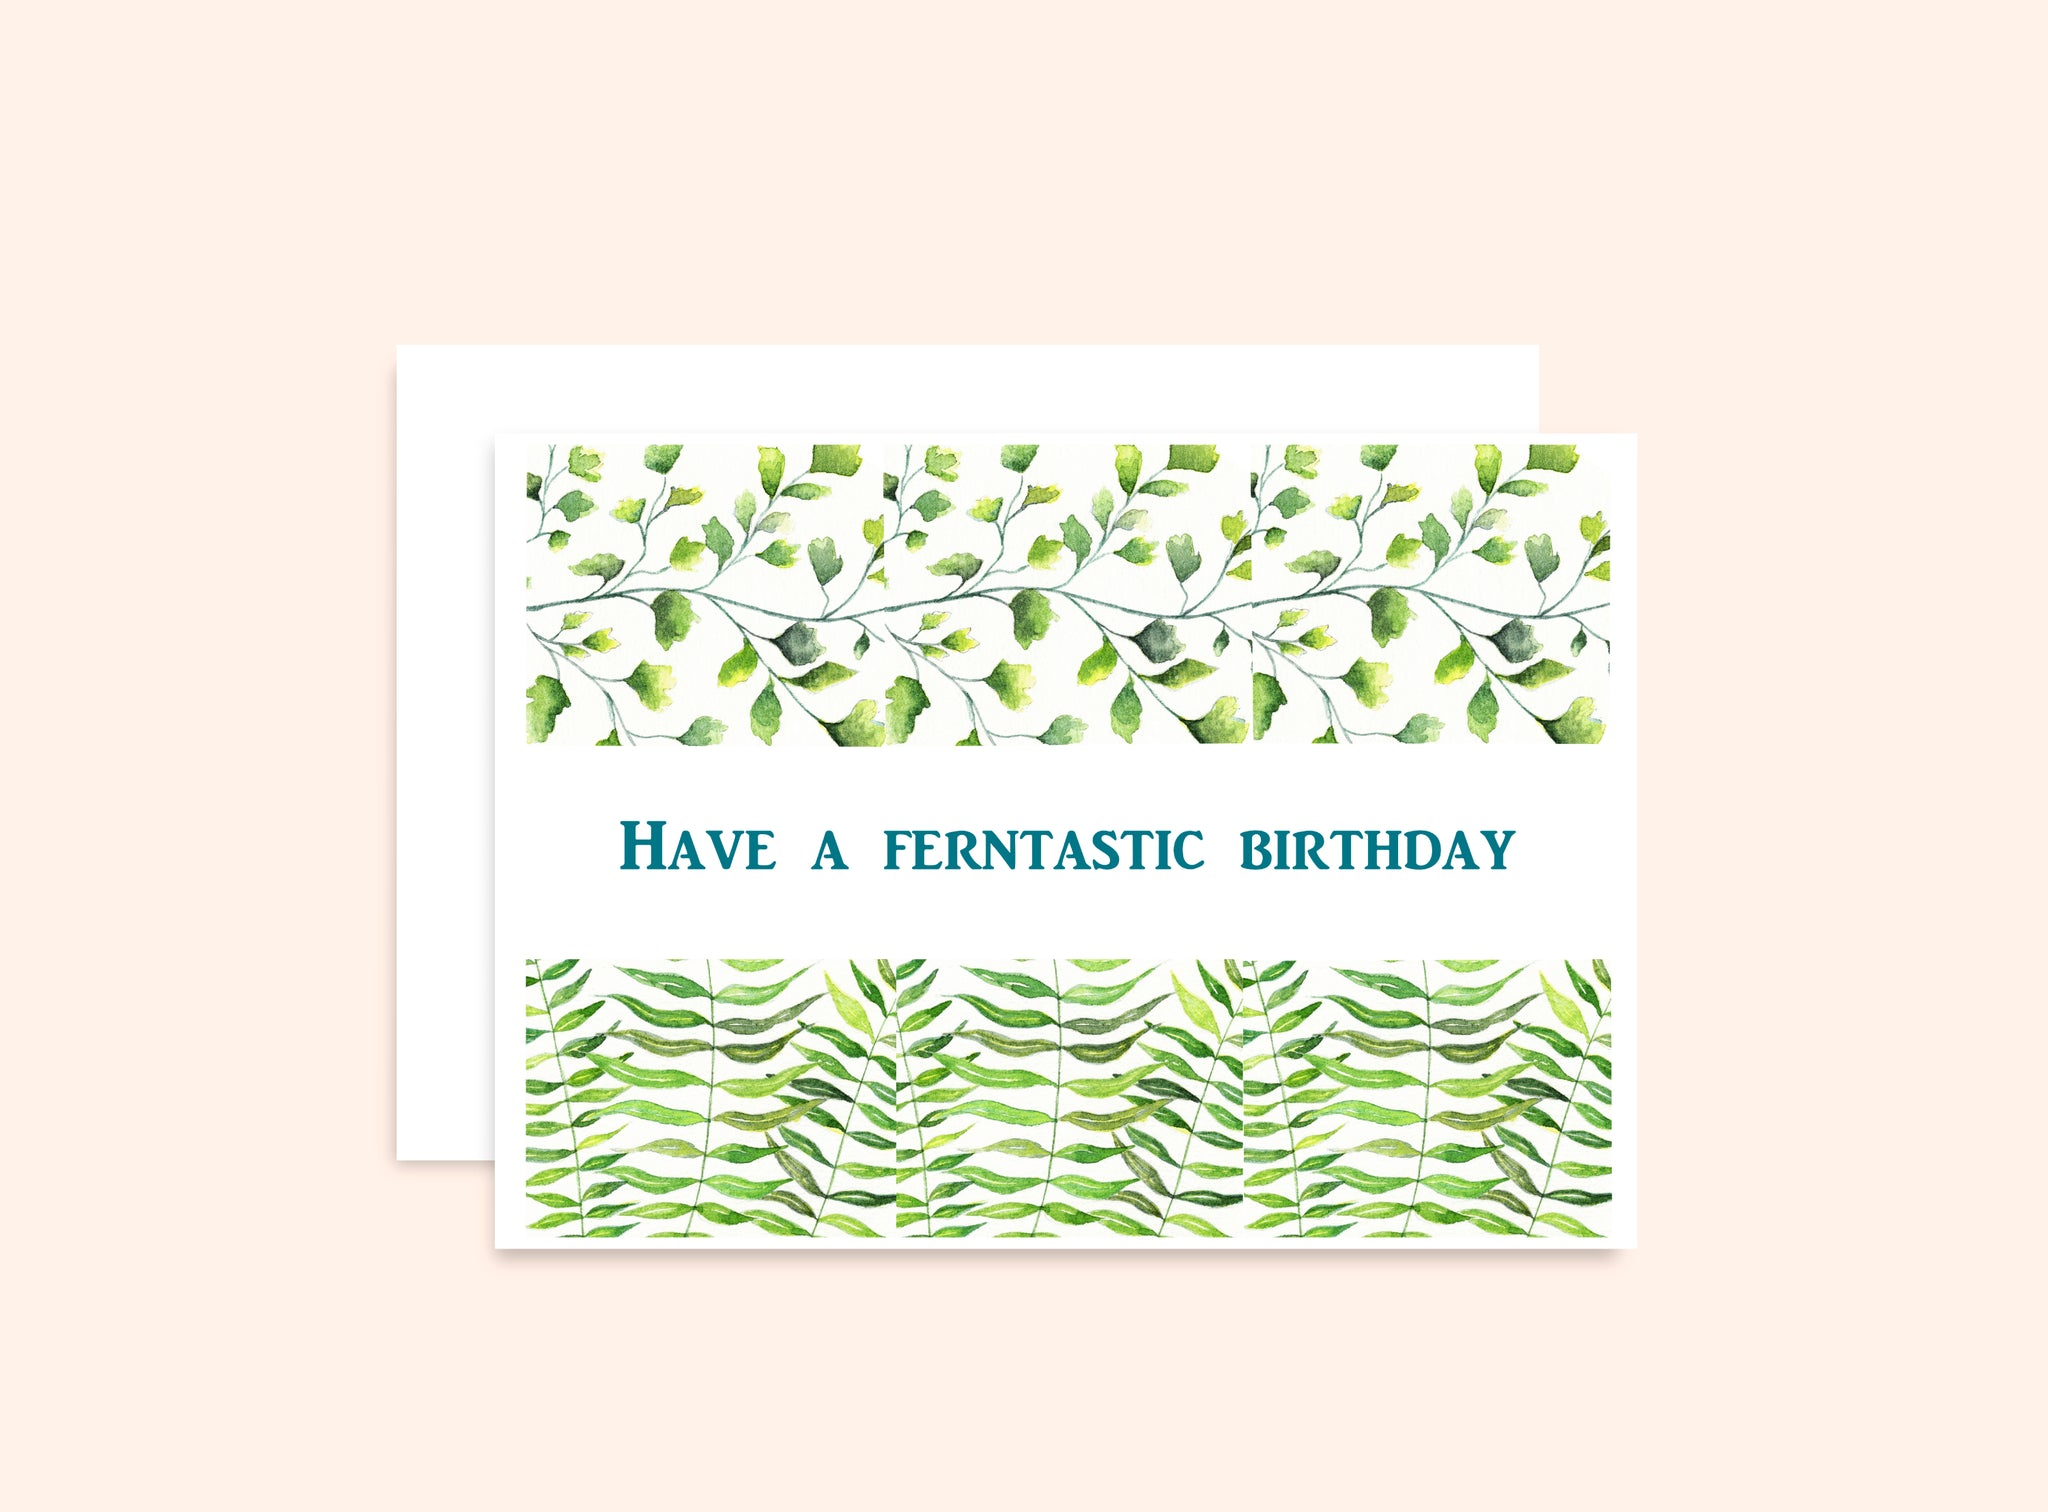 """Have a Ferntastic Birthday"" Fern Card"